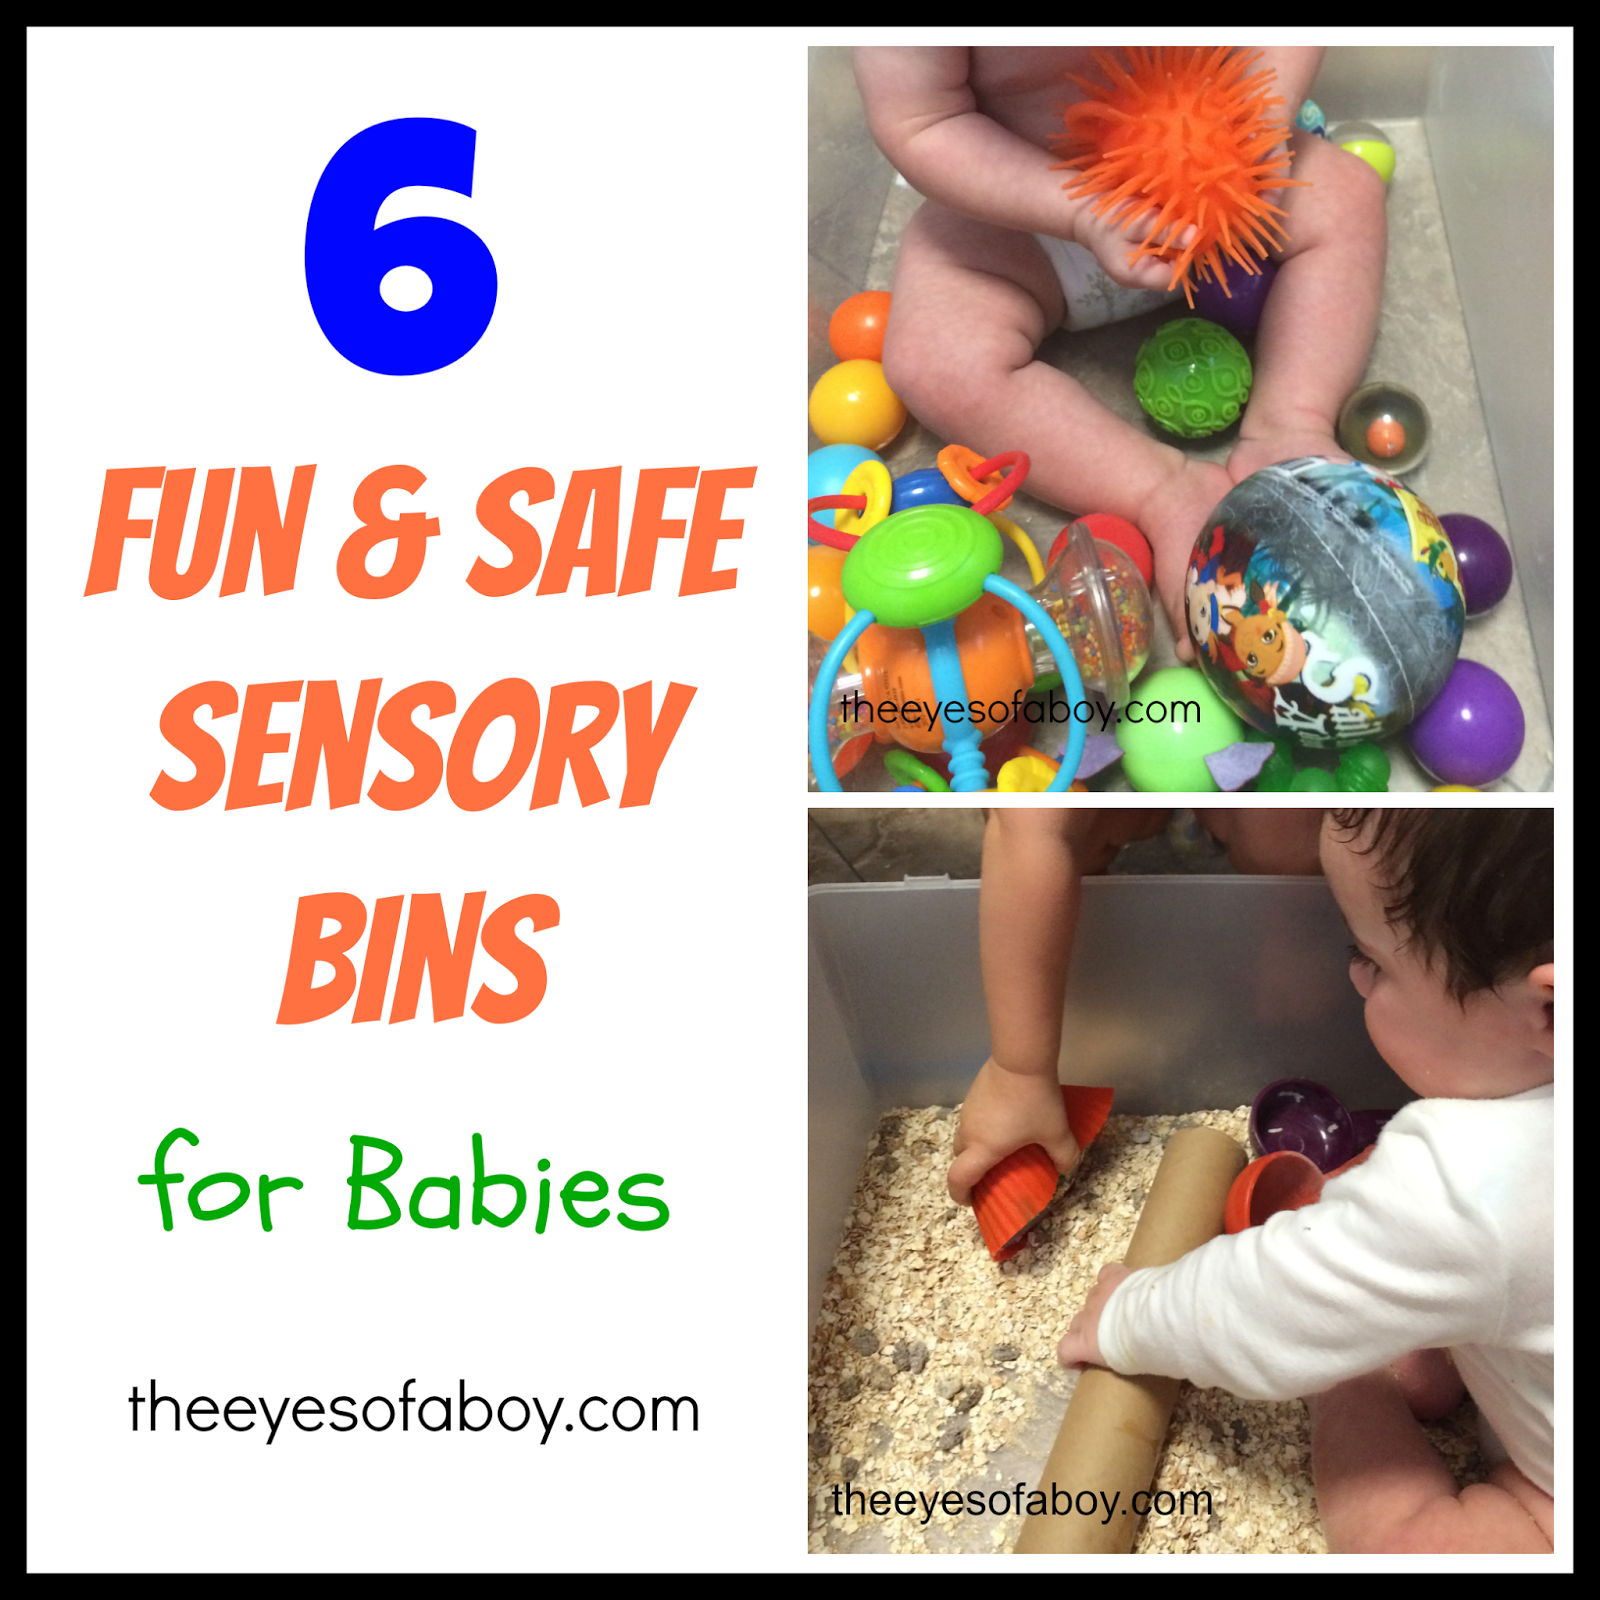 6 Fun and Safe Sensory Bins for Babies